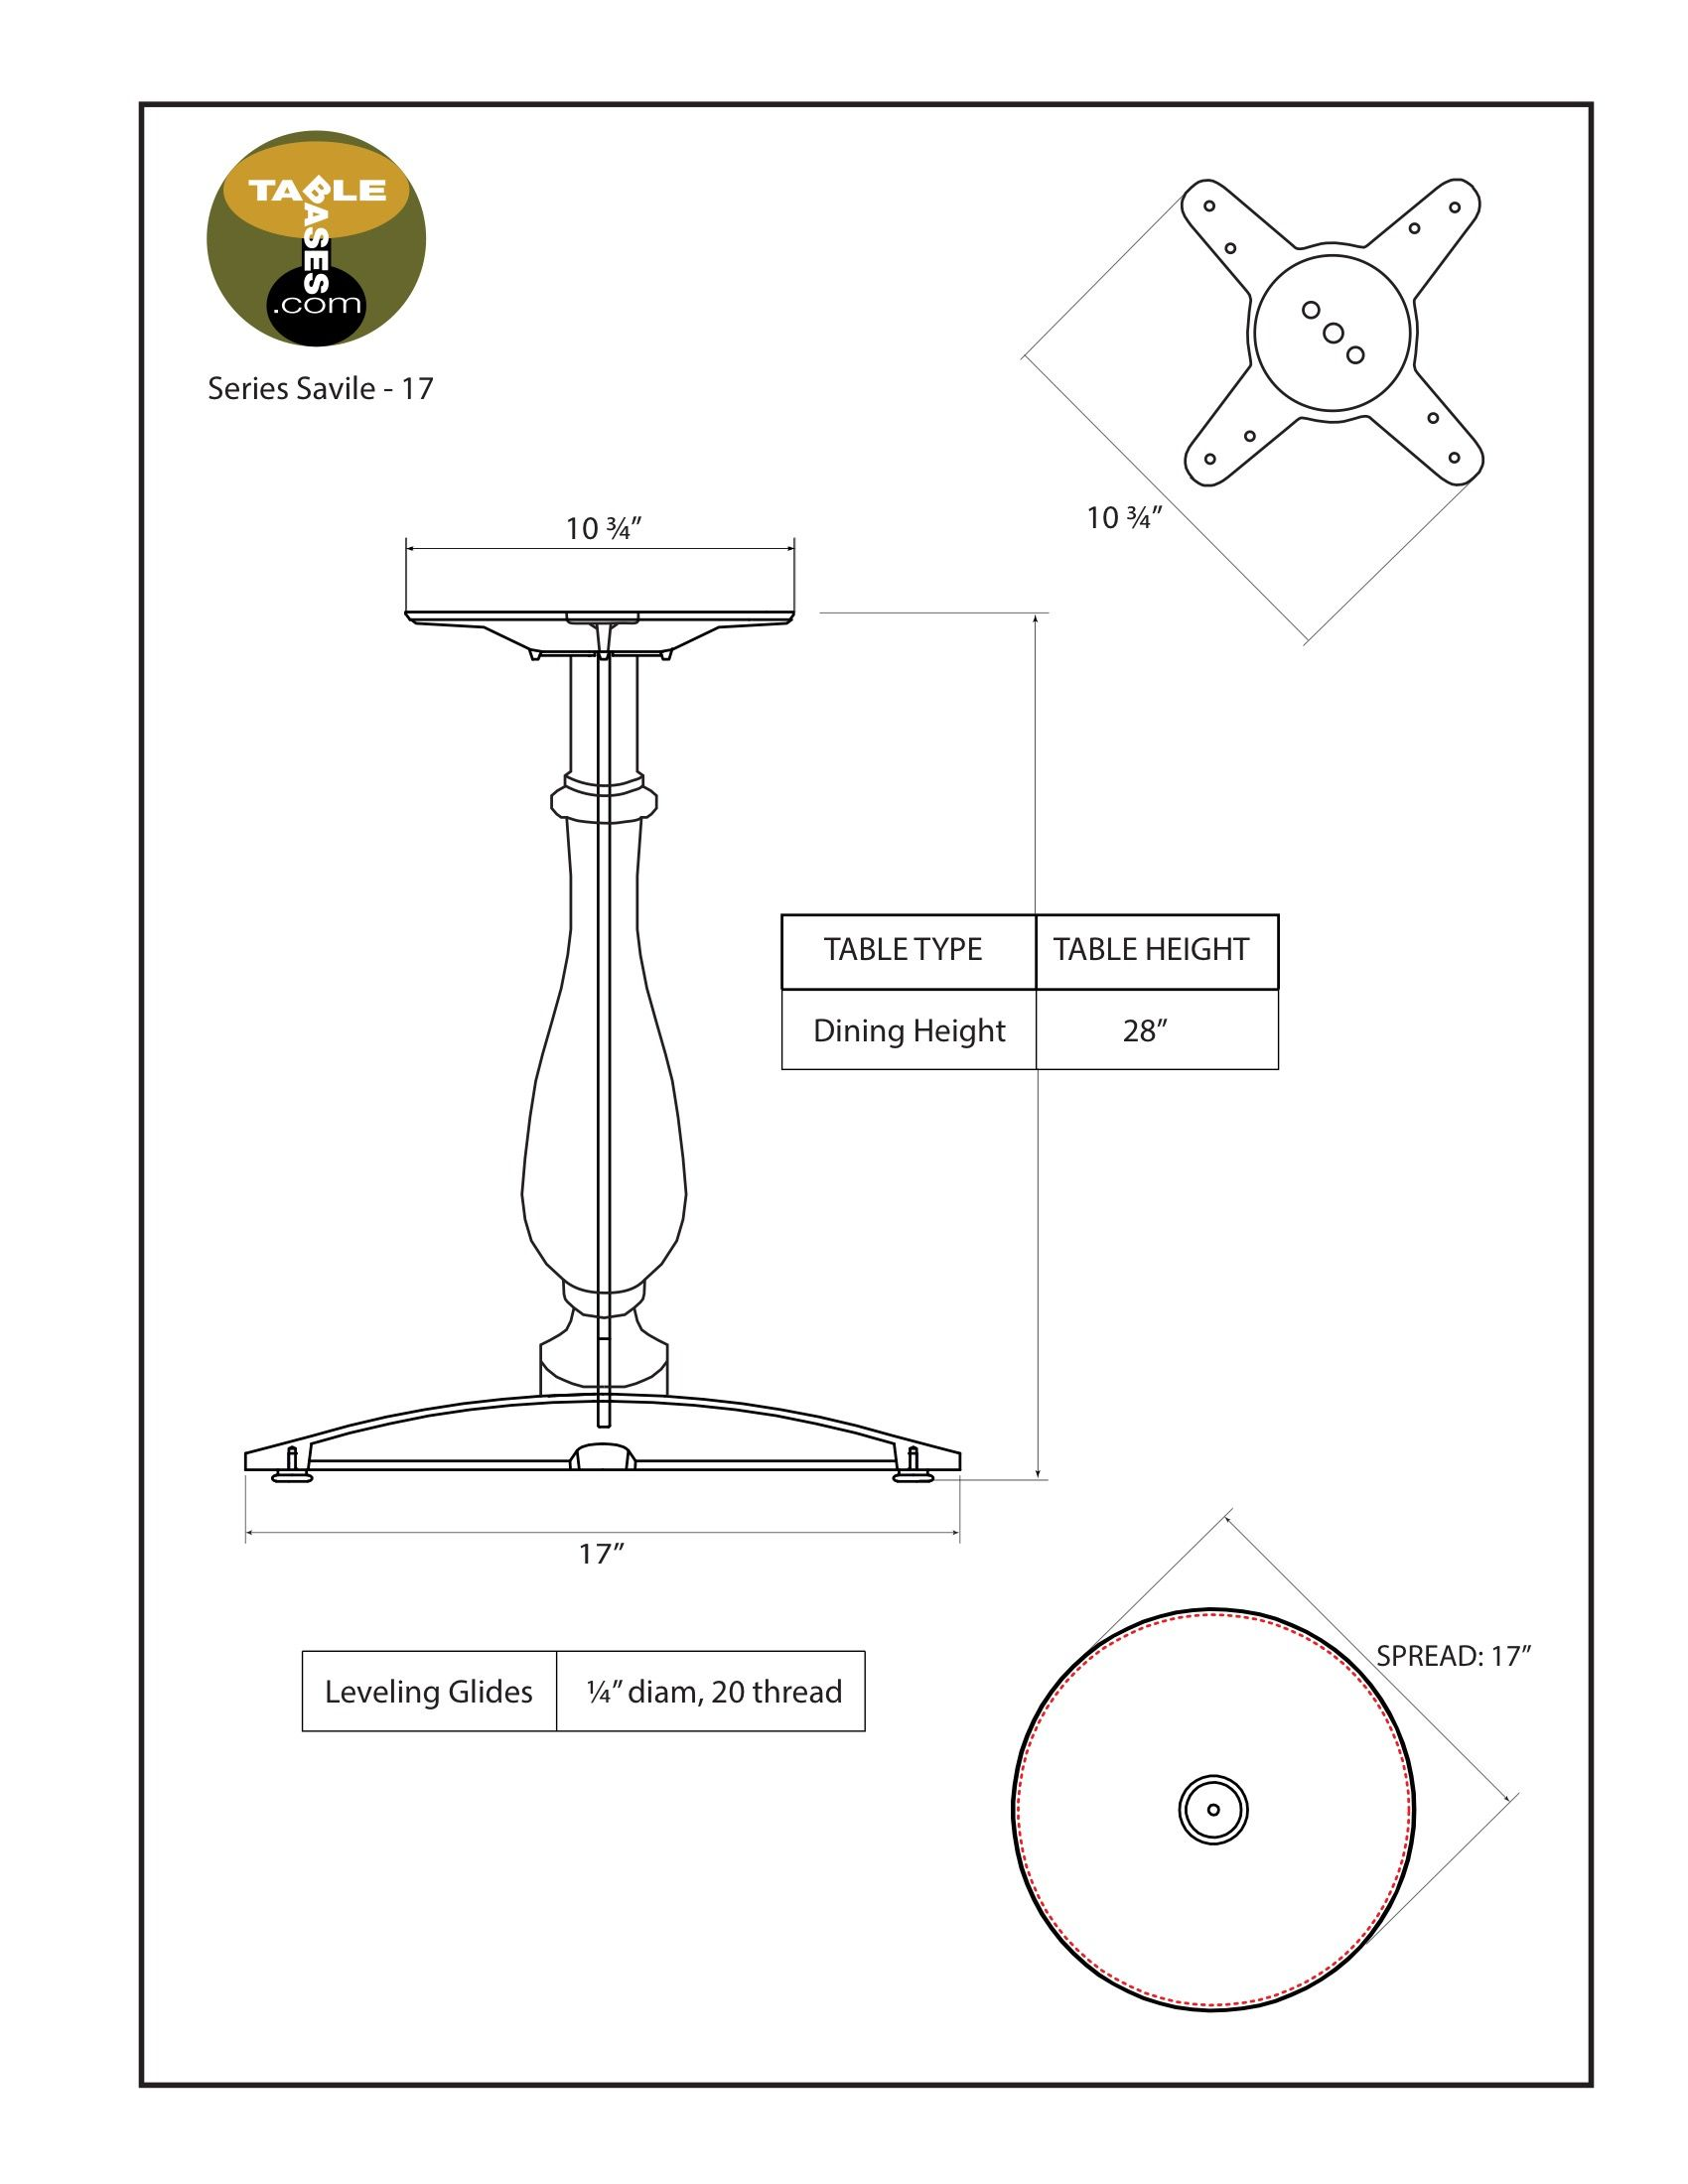 Savile-17 Specifications